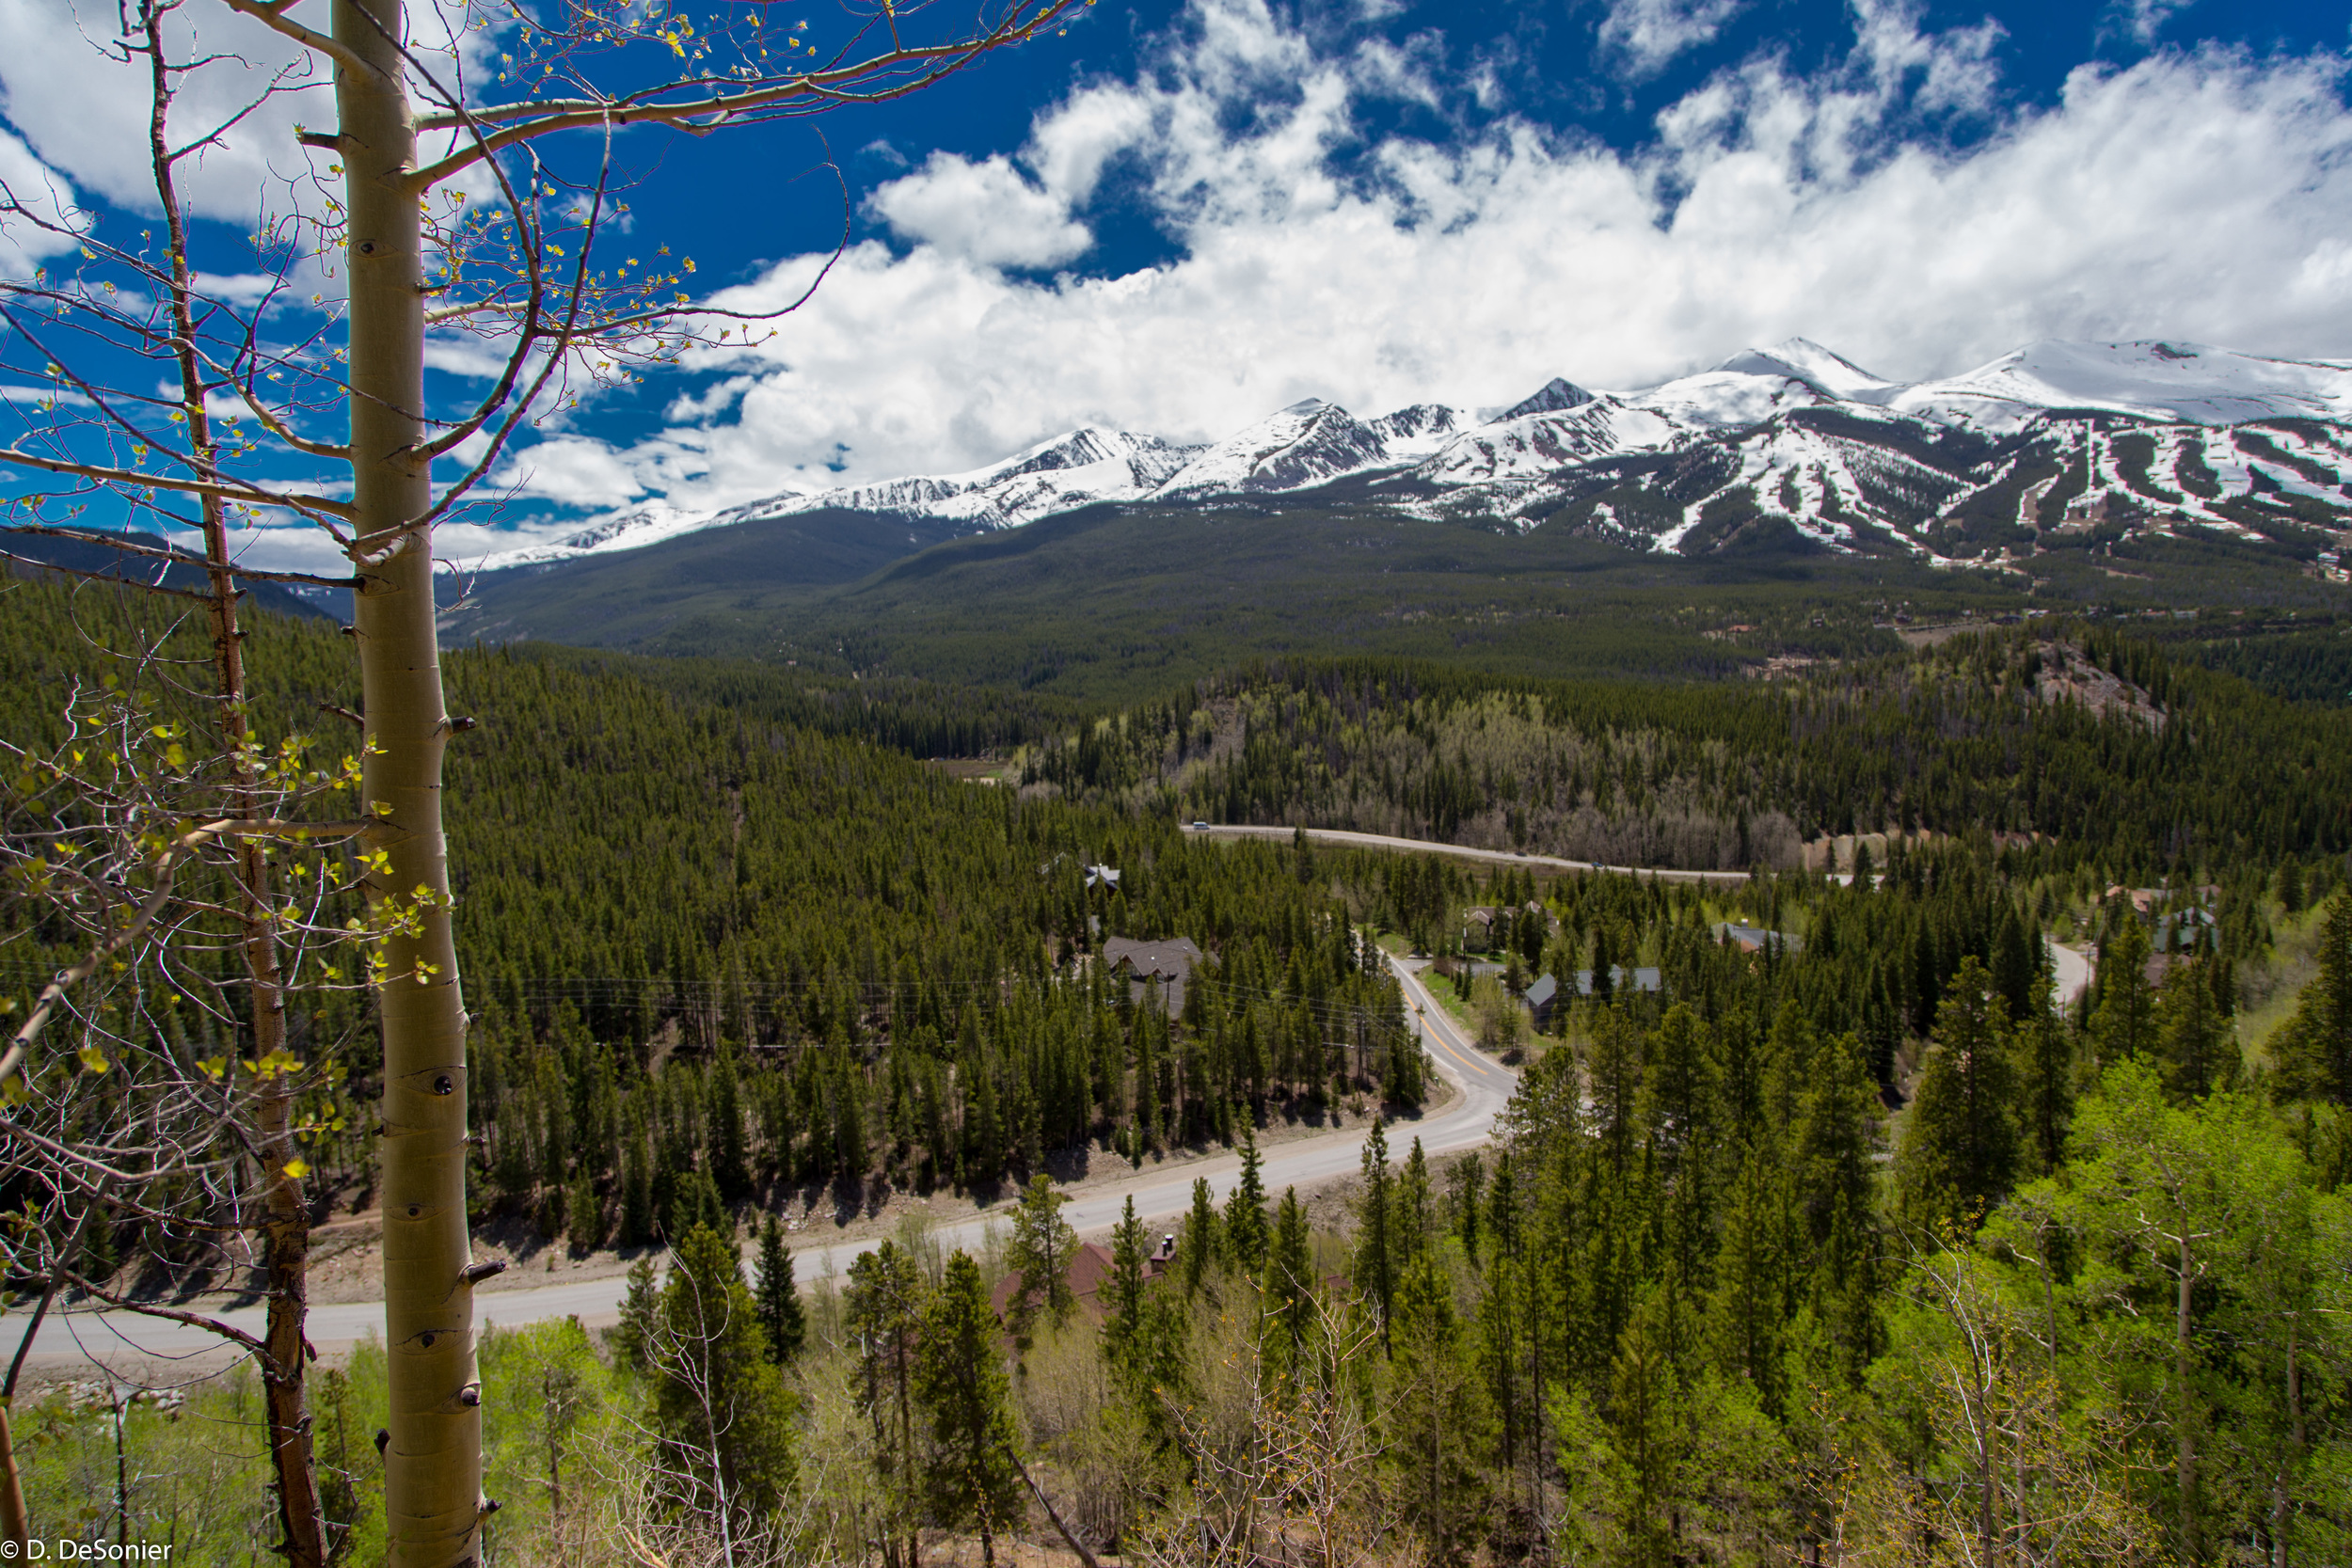 View of Breckenridge ski area.